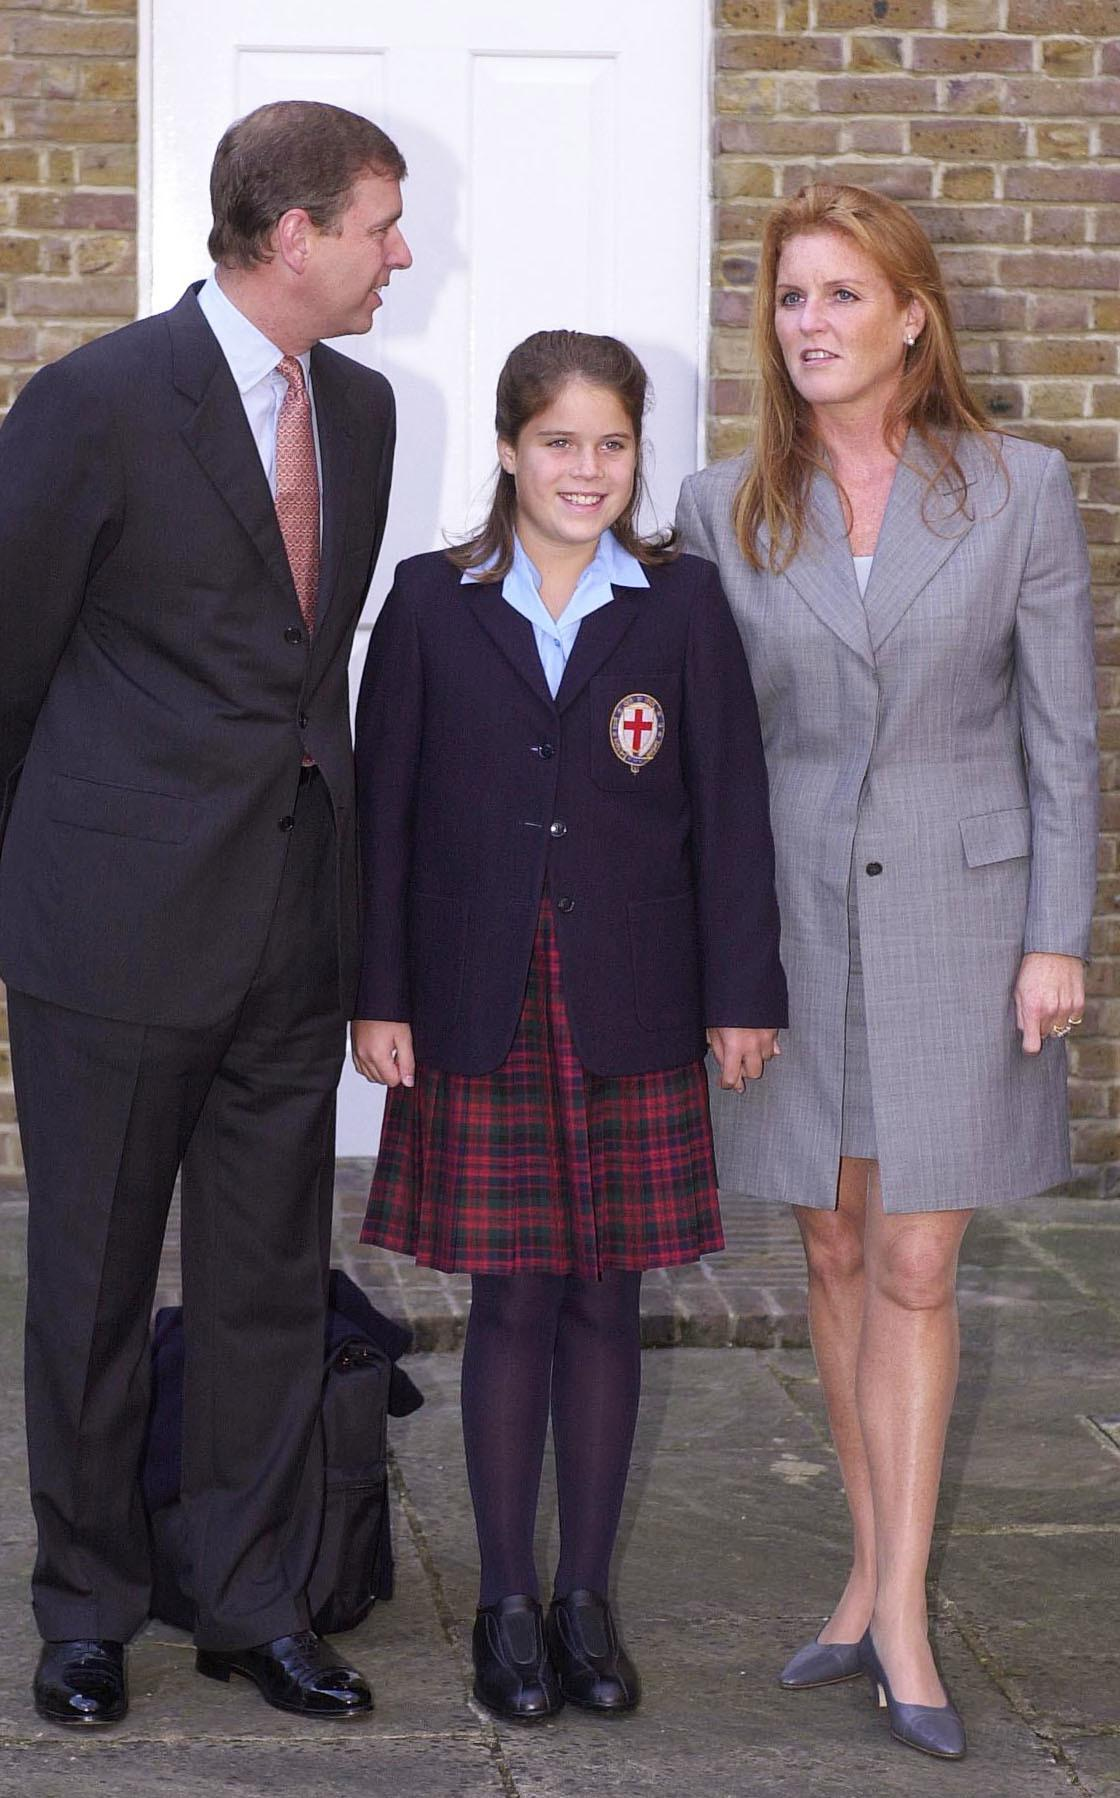 Princess Eugenie arrives with her parents, the Duke and Duchess of York, for her first day at St George's School, Windsor. Eugenie, 11, a granddaughter of Queen Elizabeth II, is a day pupil at the school, where she is expected to stay for two years.  * before moving on to a senior school, possibly joining her sister, Princess Beatrice, 13, at St George's, Ascot.   06/11/02 The Duke told how Eugenie, now 12, is two inches taller after an operation to correct curvature of her spine while chatting to a 12-year-old hospital patient on a visit to the Uruguayan capital Montevideo.